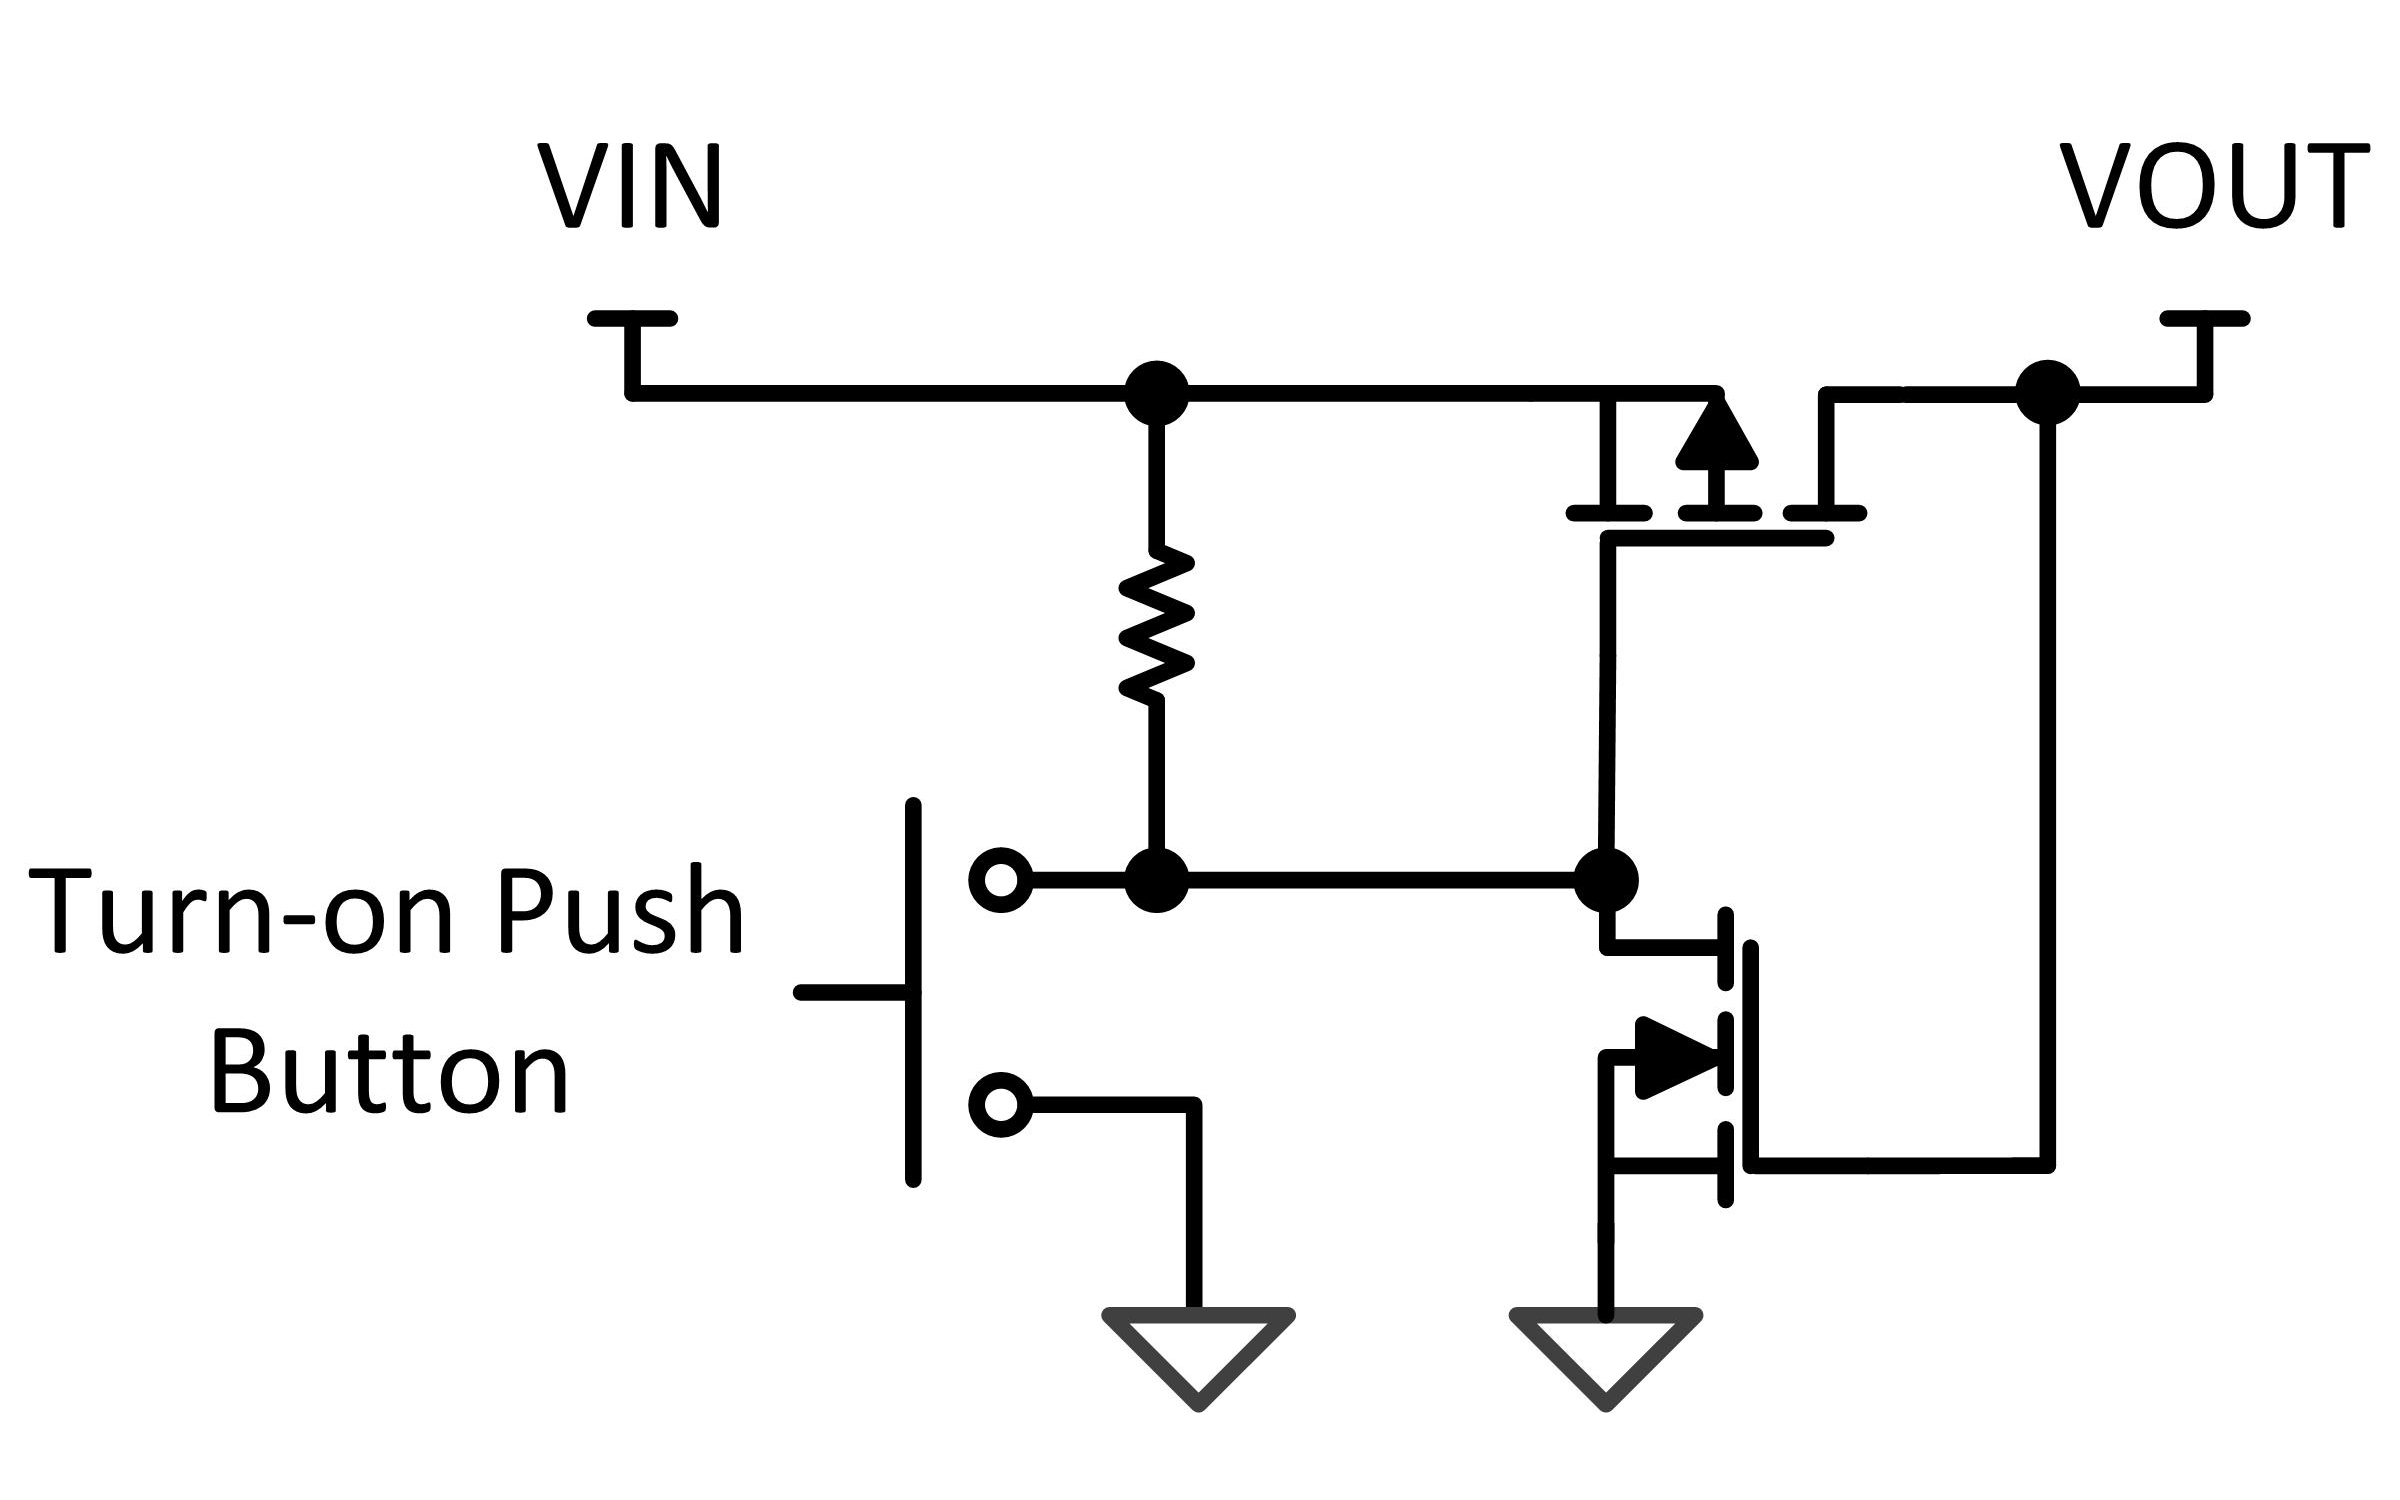 Wiring Diagram For Single Phase Motor With Capacitor Start together with Century Furnace Motor Wiring Diagram furthermore 115 Volt Wiring Diagram furthermore Weg 6 Lead Motor Wiring Diagram likewise Wiring Diagram York Air Conditioner. on rv ac pressor blower motor wiring diagram